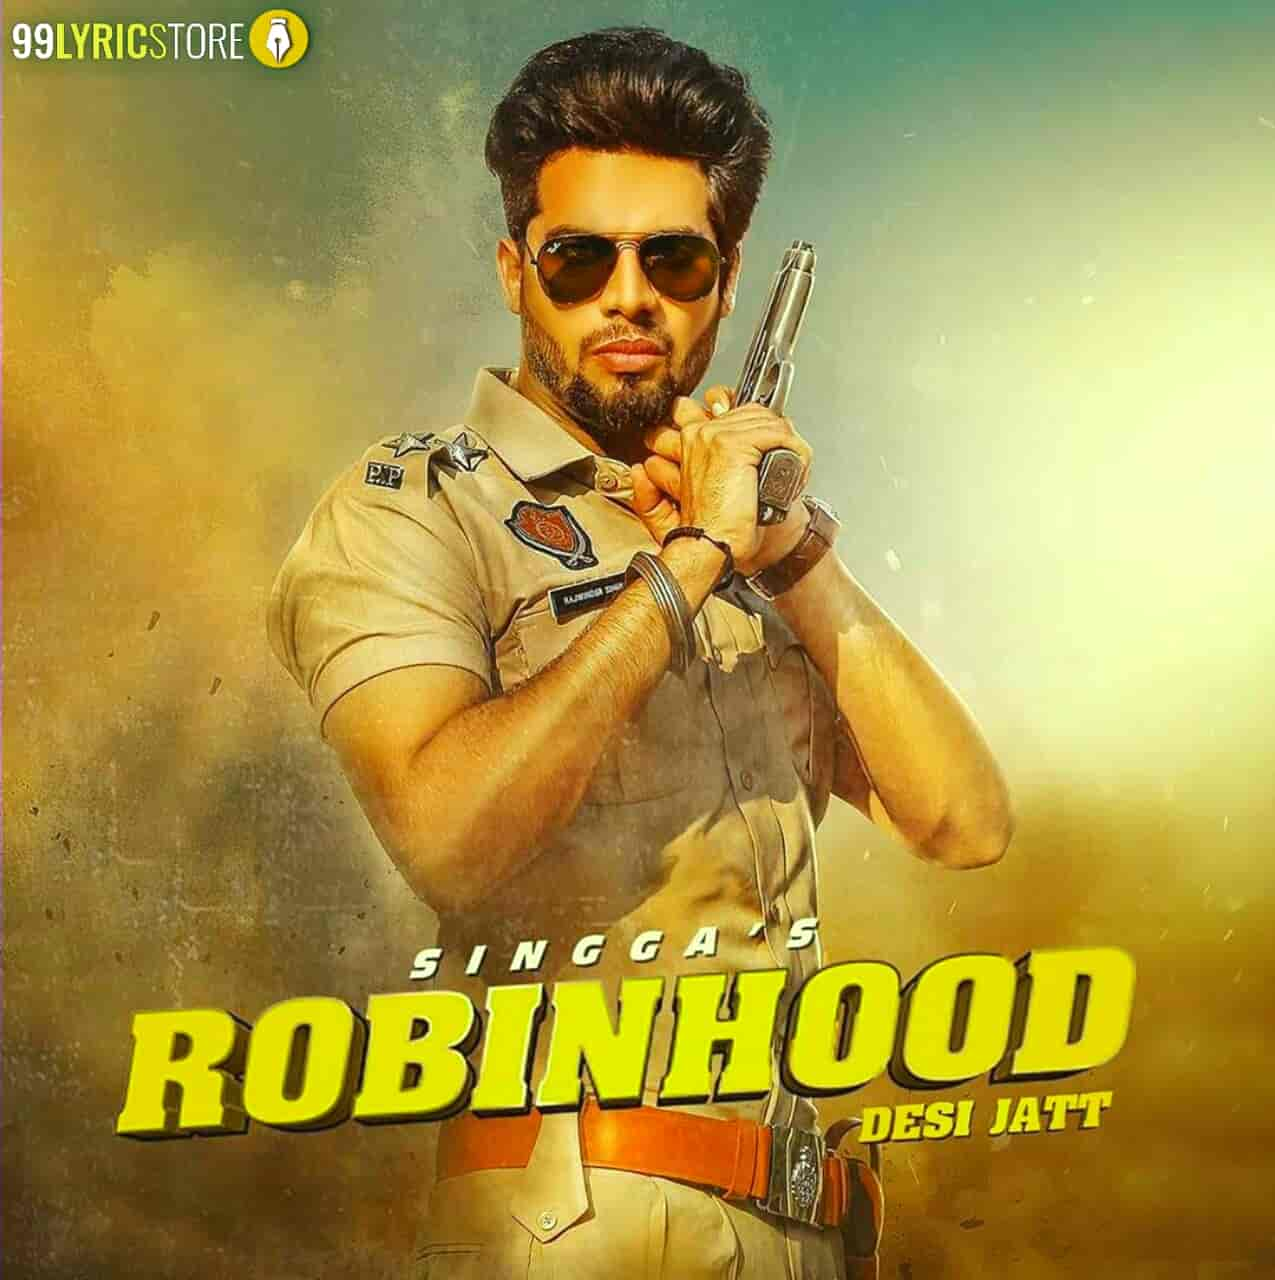 Robinhood Punjabi Songs Images